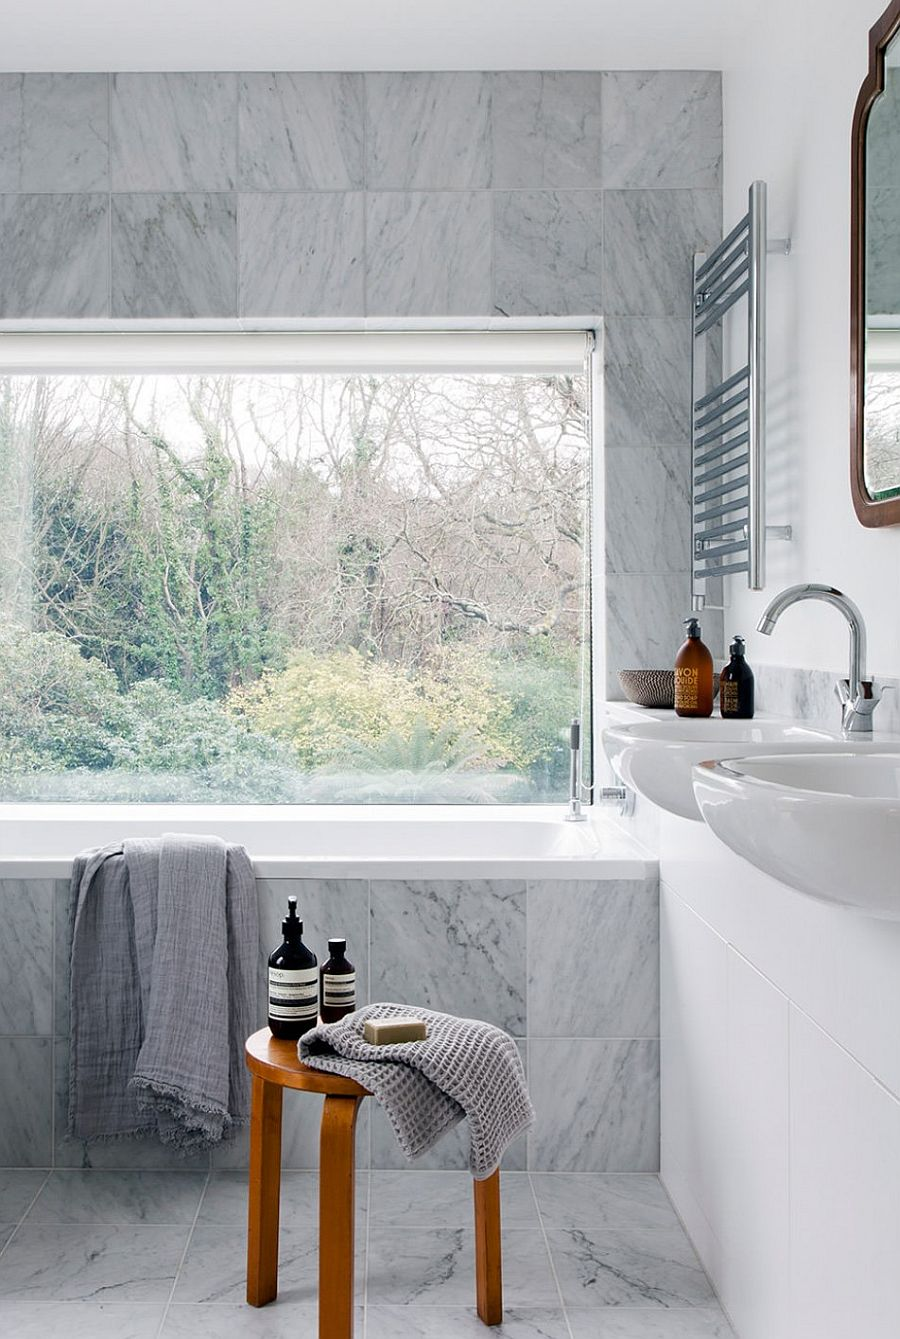 Marble brings opulence to the contemporary bathroom